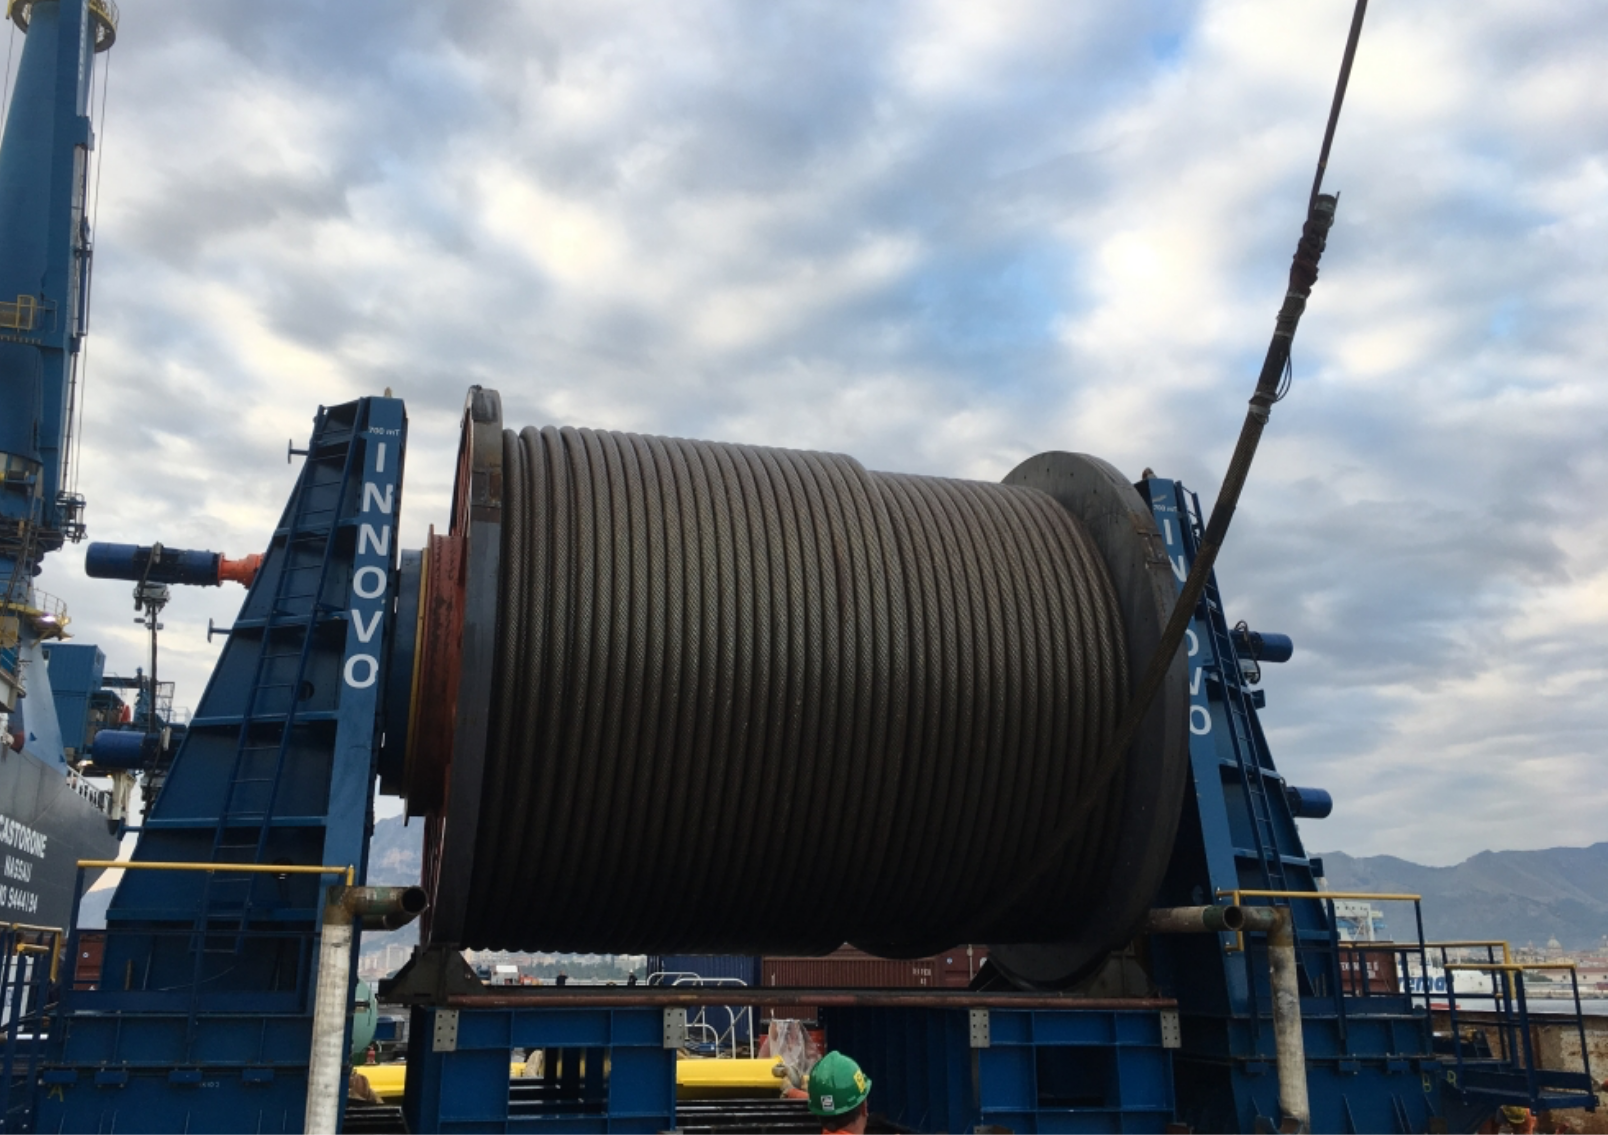 Innovo's Innodrive reel drive system completes a remarkable 15 months' umbilical laying and spooling activity with 0% downtime